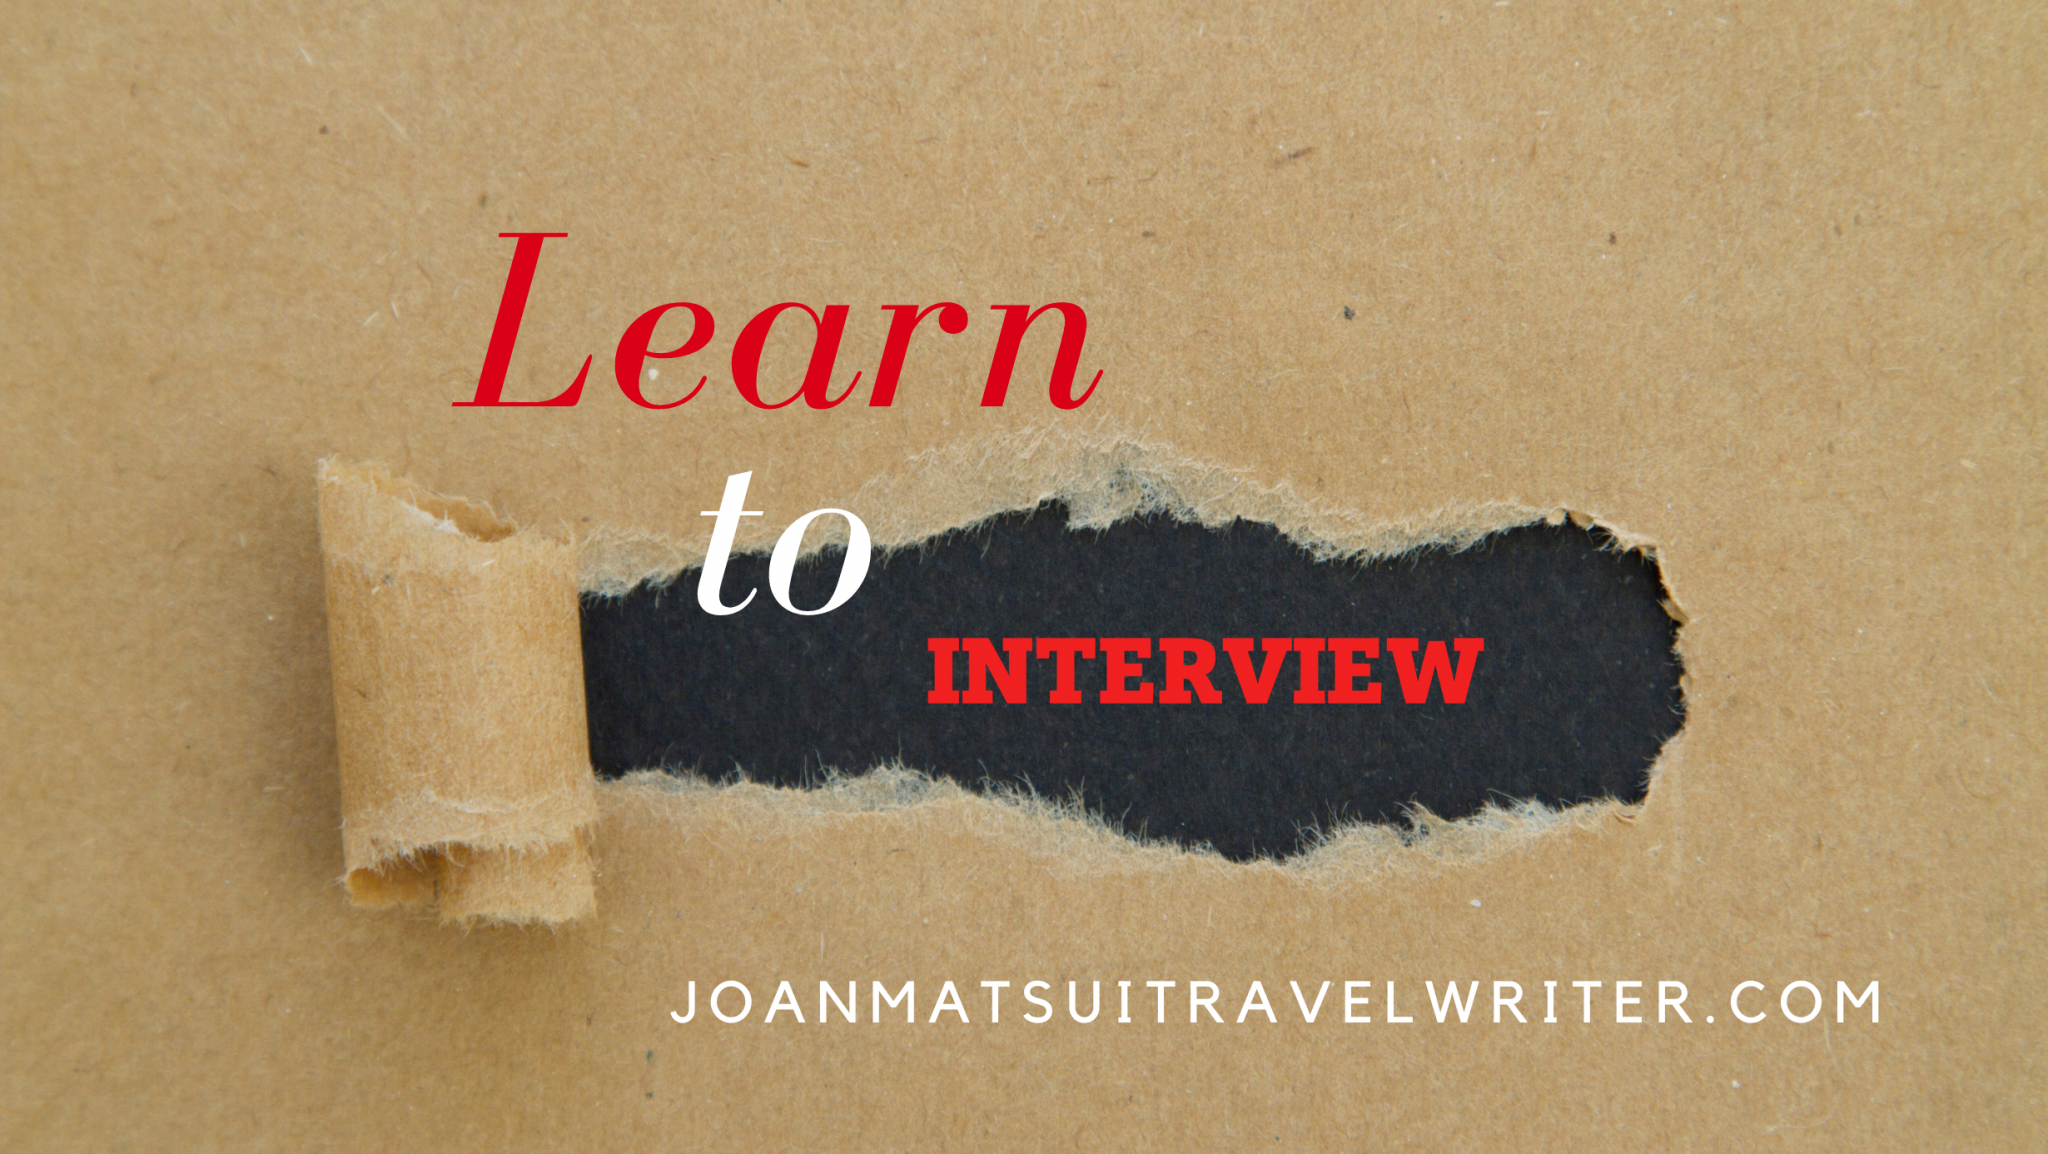 Learn to Interview with A Writer's No-Nonsense Guide to Interviewing